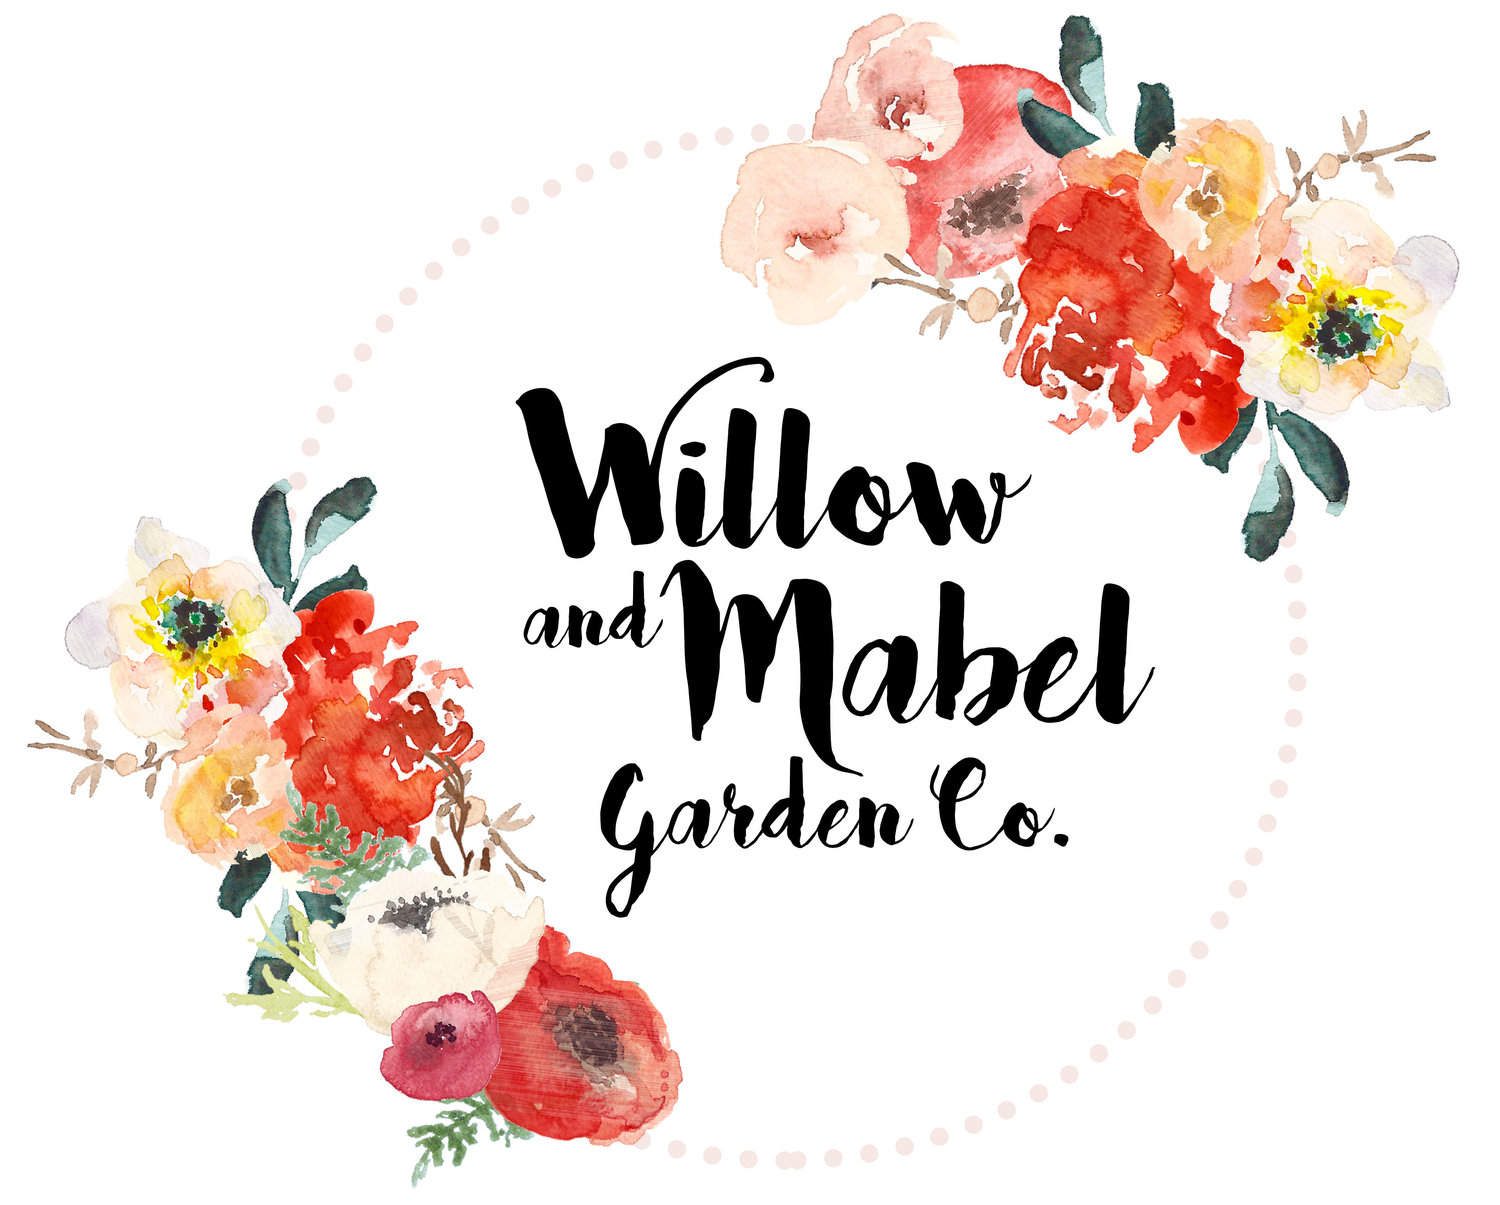 Willow and Mabel Garden Co.